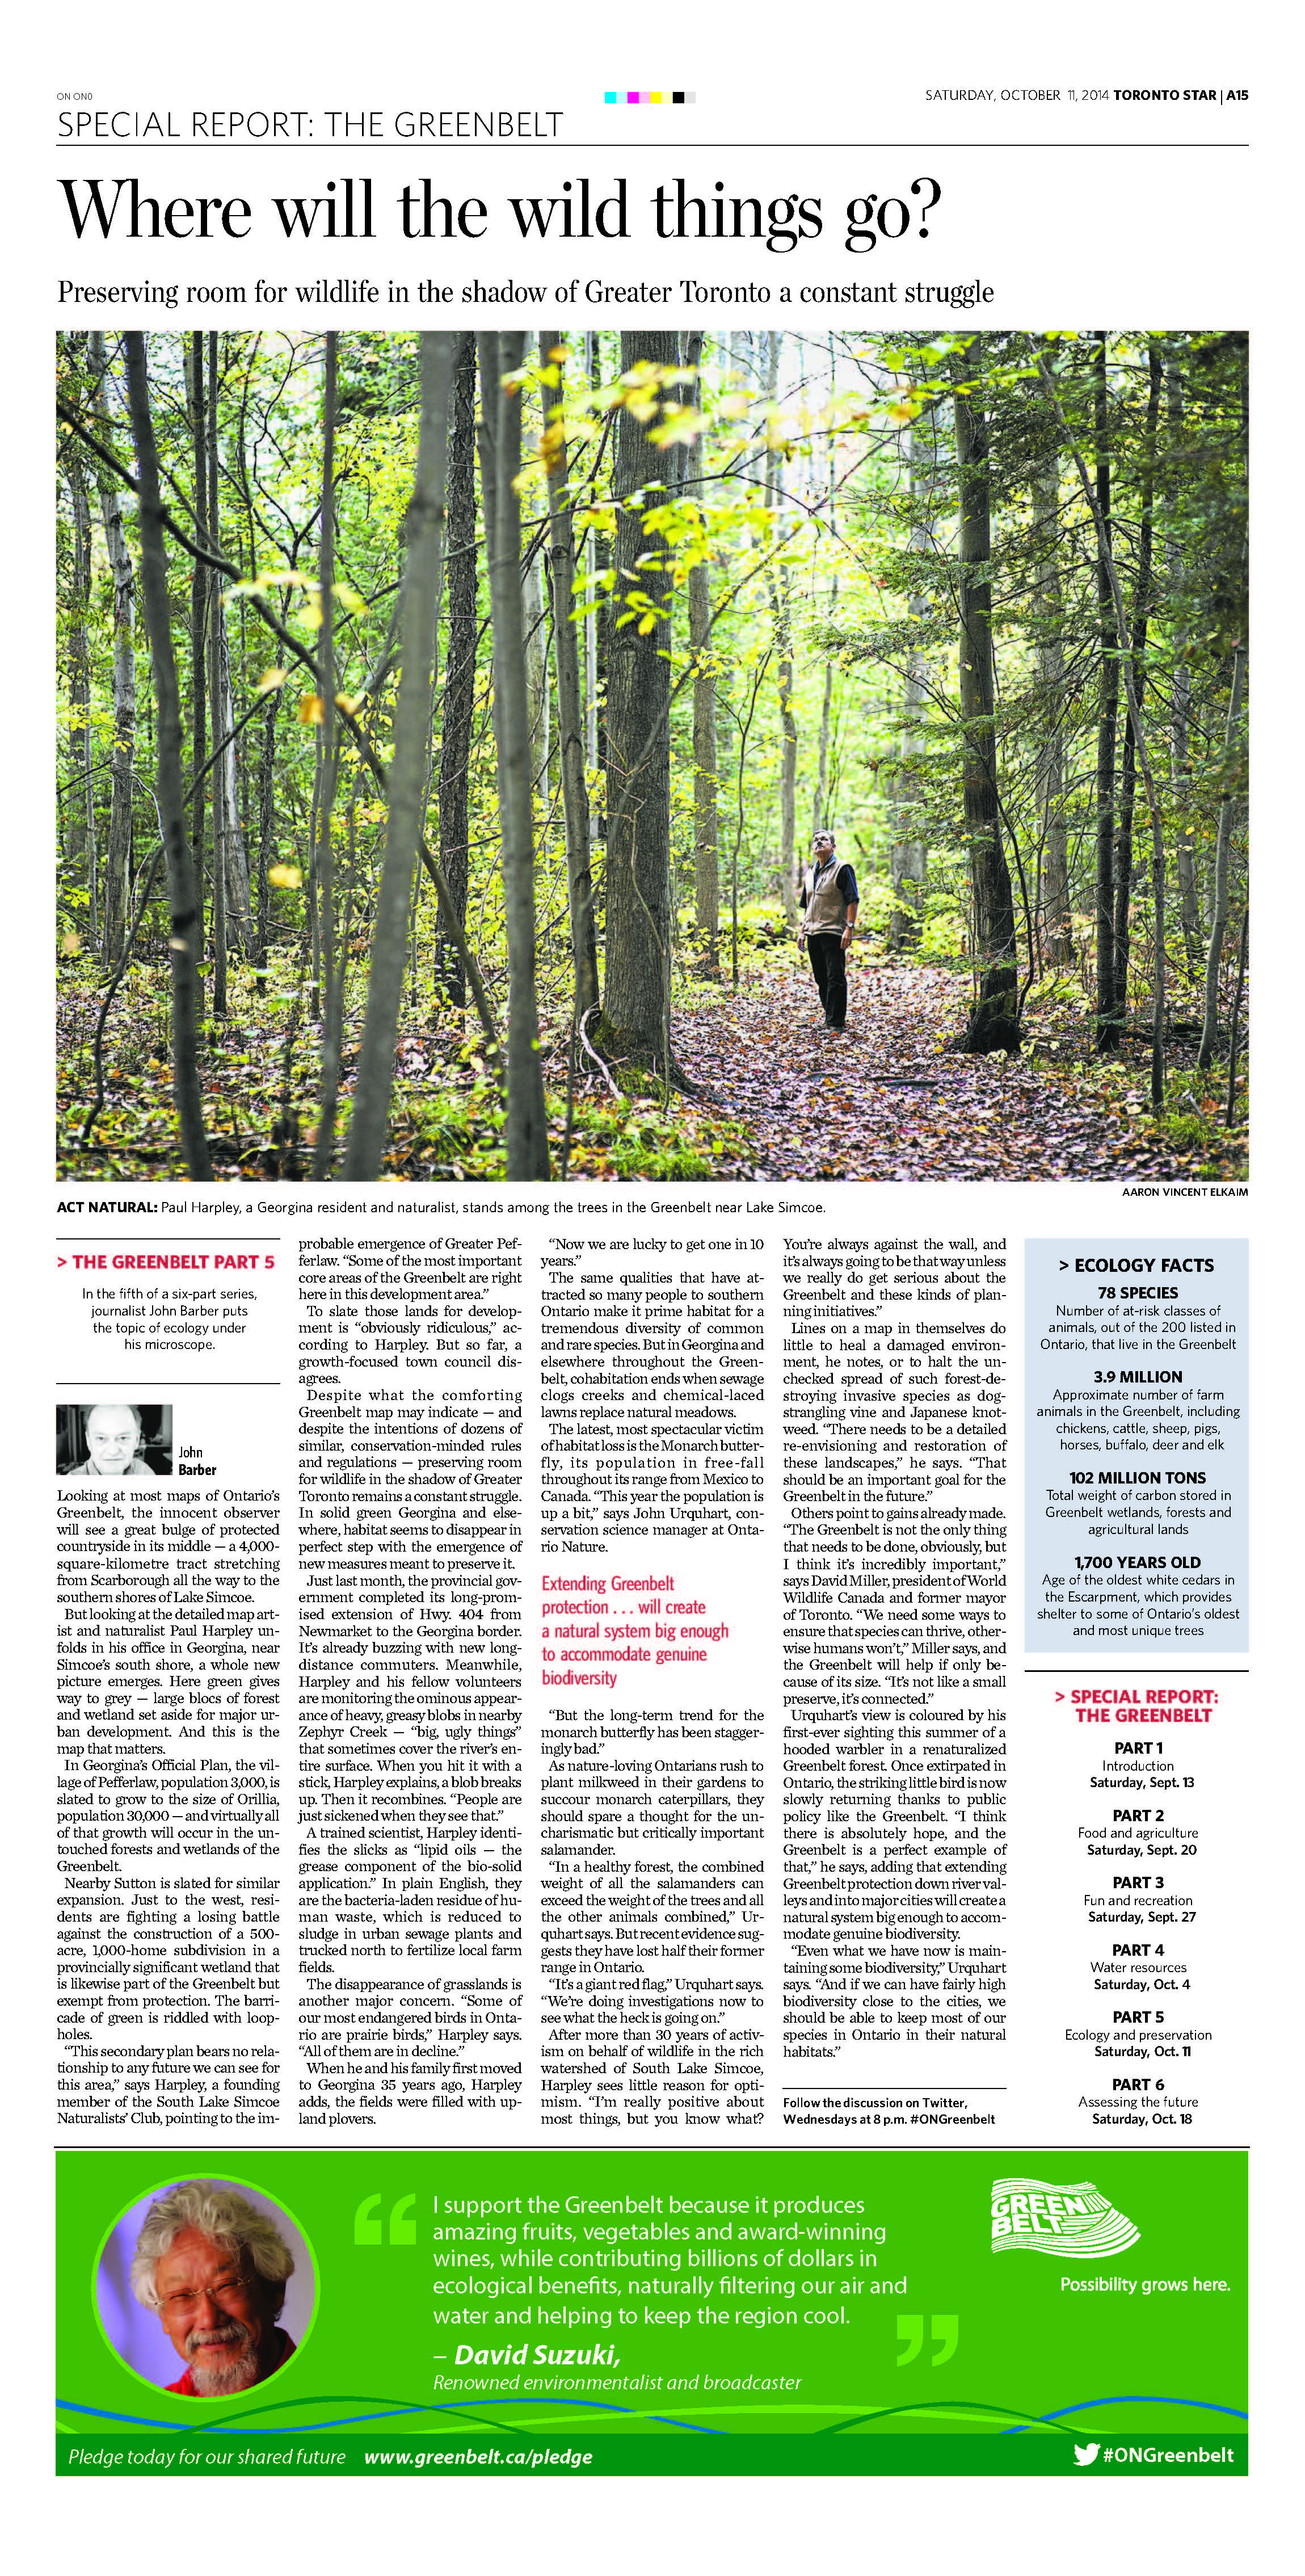 TorontoStar_GreenbeltSeries_Ecology_Oct11_2014.jpg